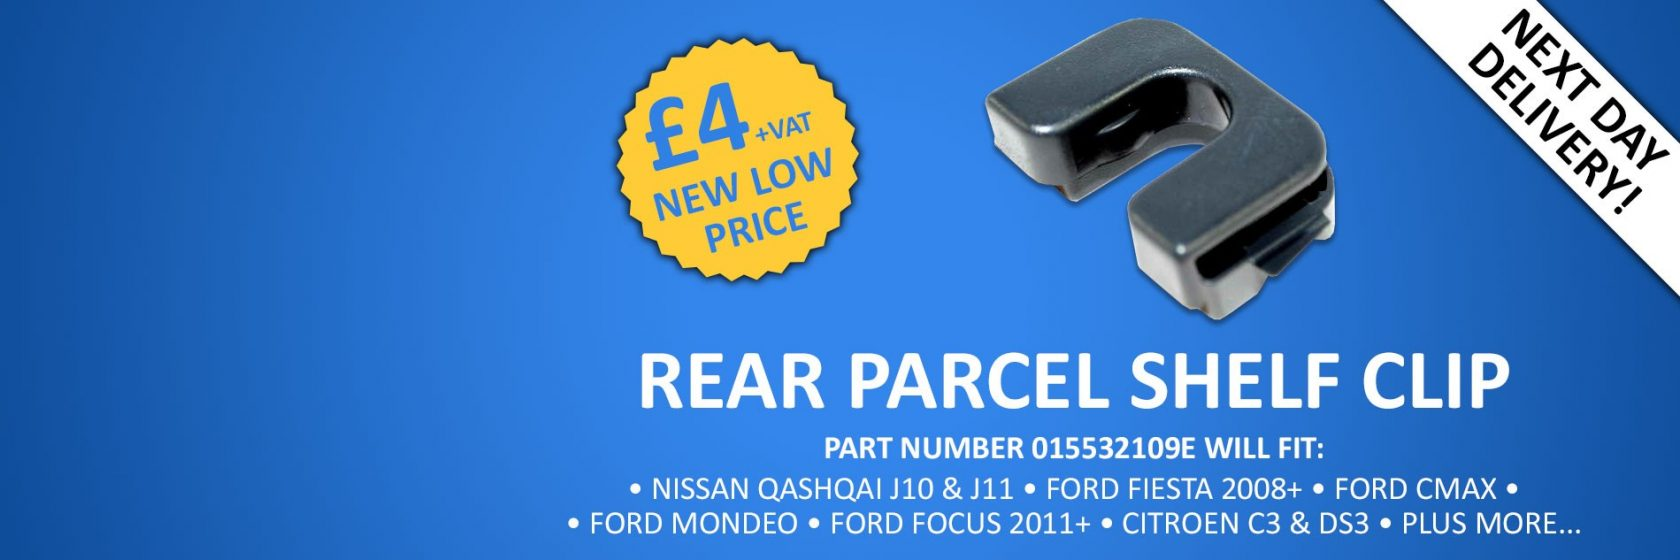 Nissan Qashqai Rear Parcel Shelf Clip